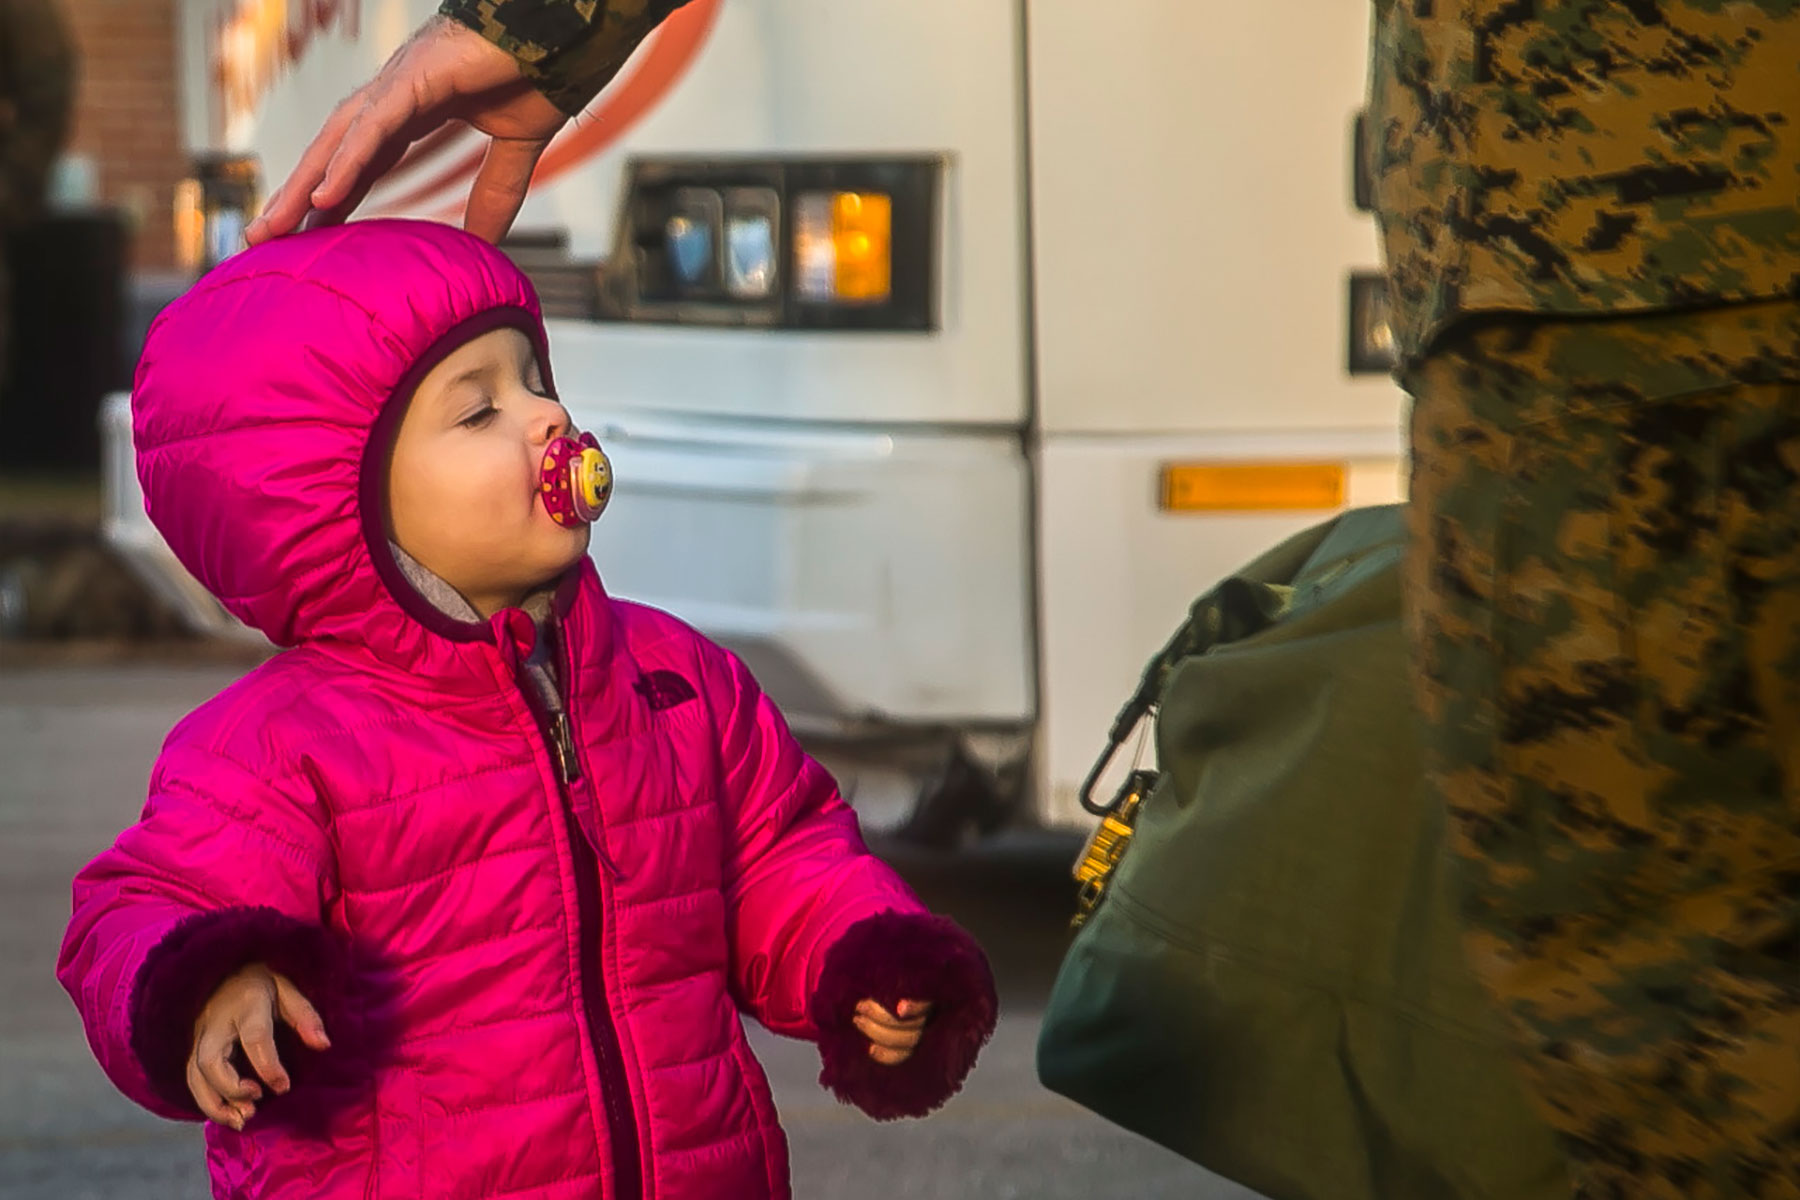 A child interacts with a U.S. Marine with the 26th Marine Expeditionary Unit (MEU), during the unit's departure from Camp Lejeune, N.C., to embark on a deployment at sea Feb. 6, 2018.  (U.S. Marine Corps)